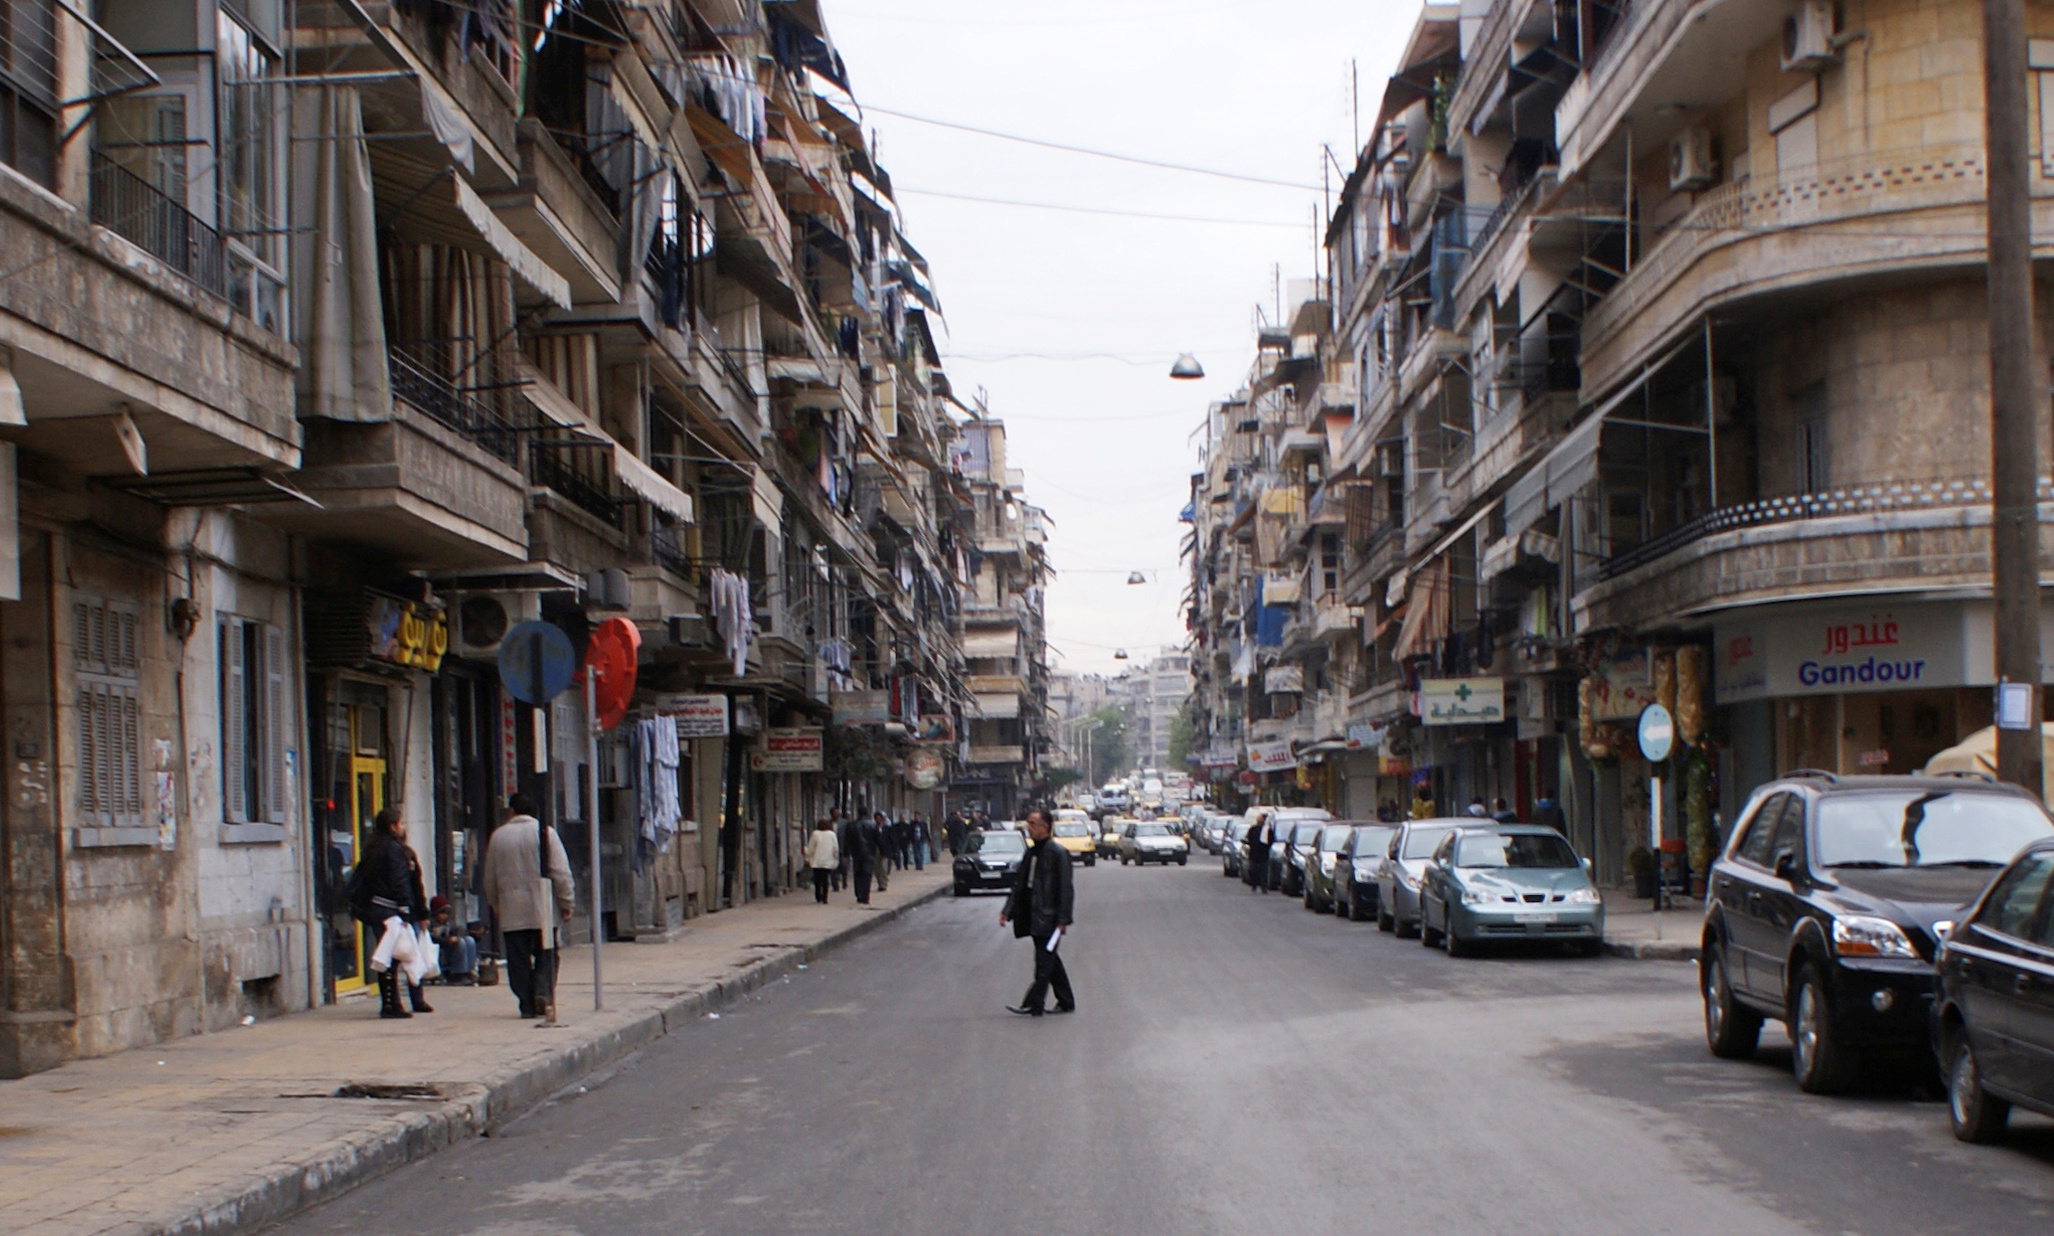 A man crosses a street in Aleppo on Dec. 12, 2009. Photo by Khalil Ashawi/Reuters